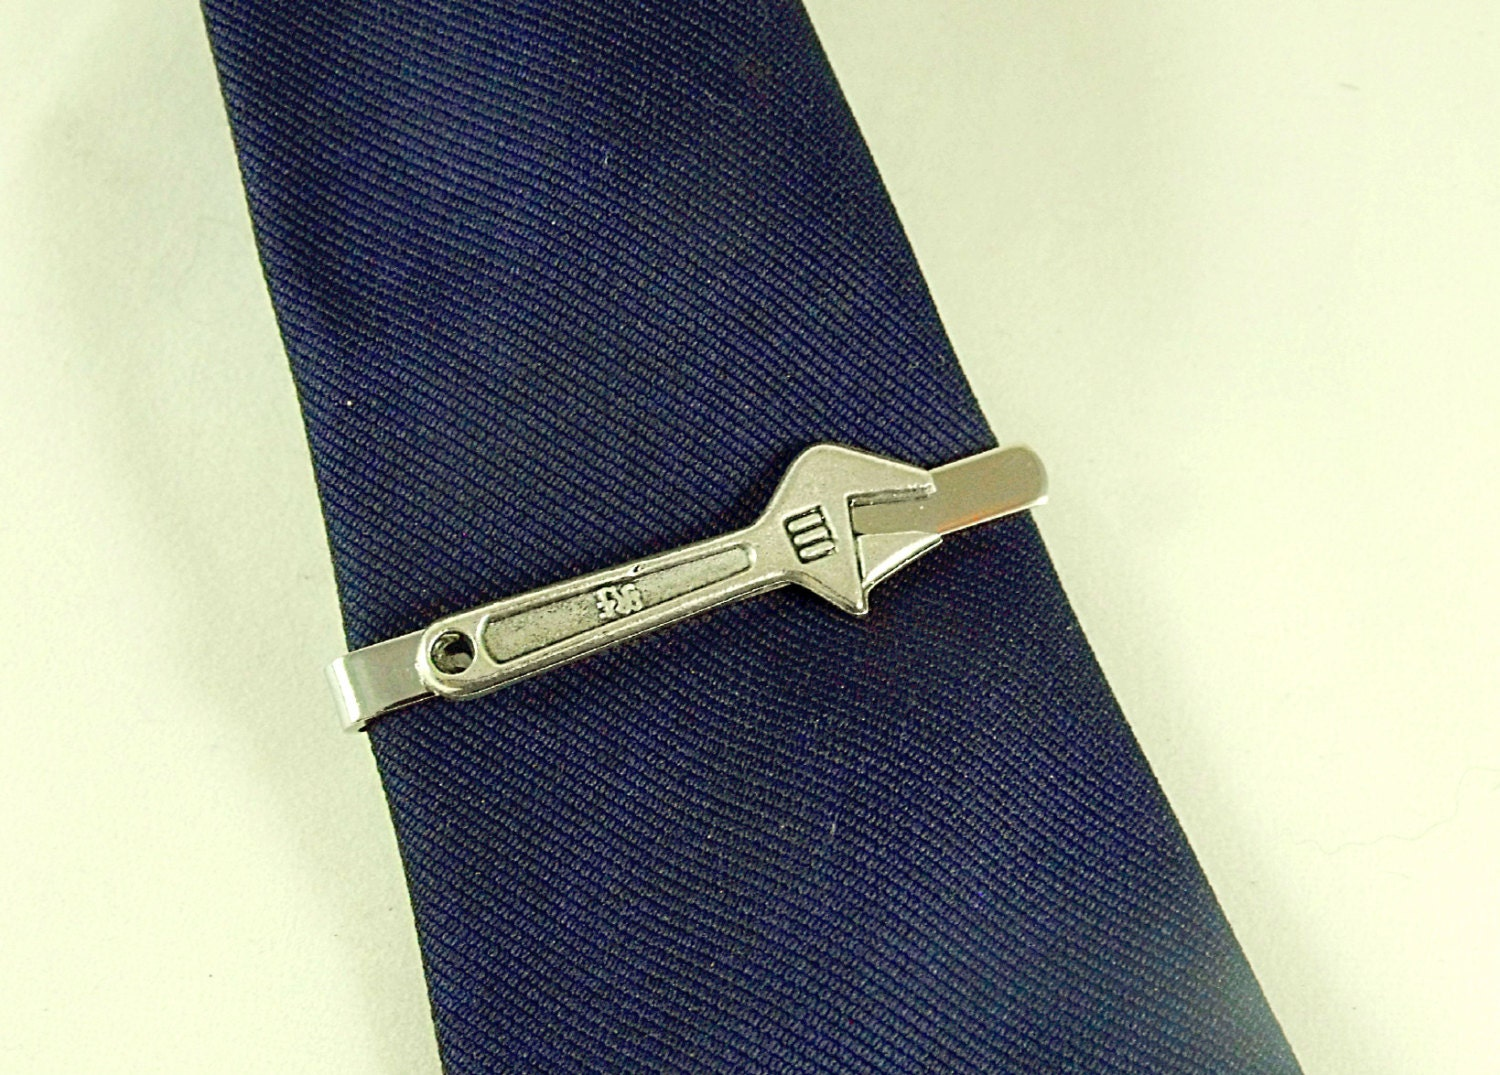 Wrench Clip Wrench Tie Clip